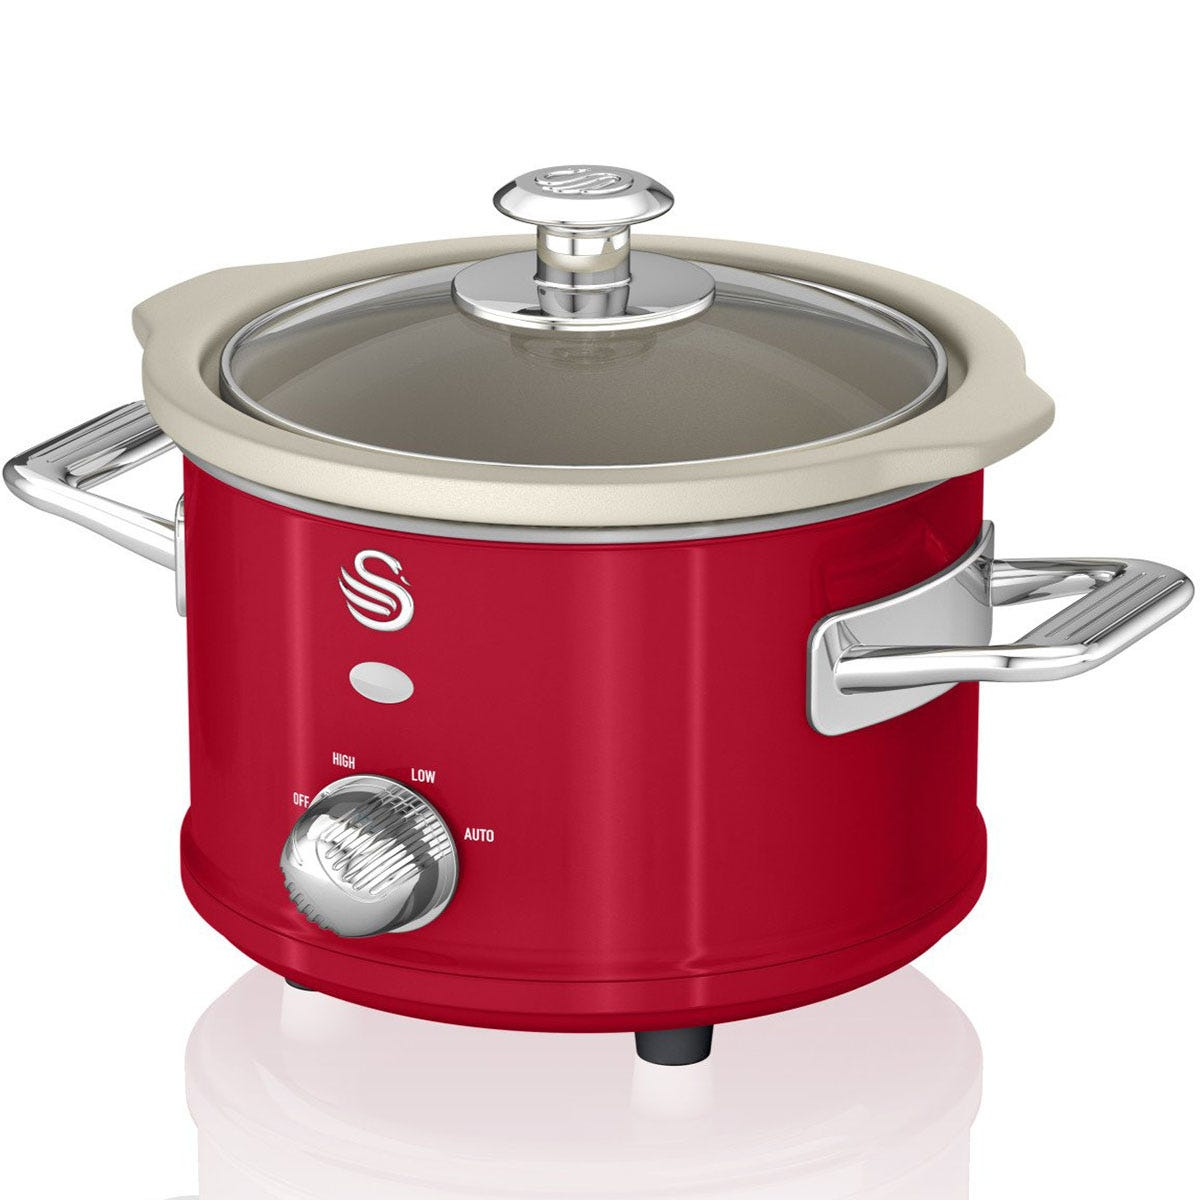 Swan SF17011RN 1.5L Retro Slow Cooker - Red